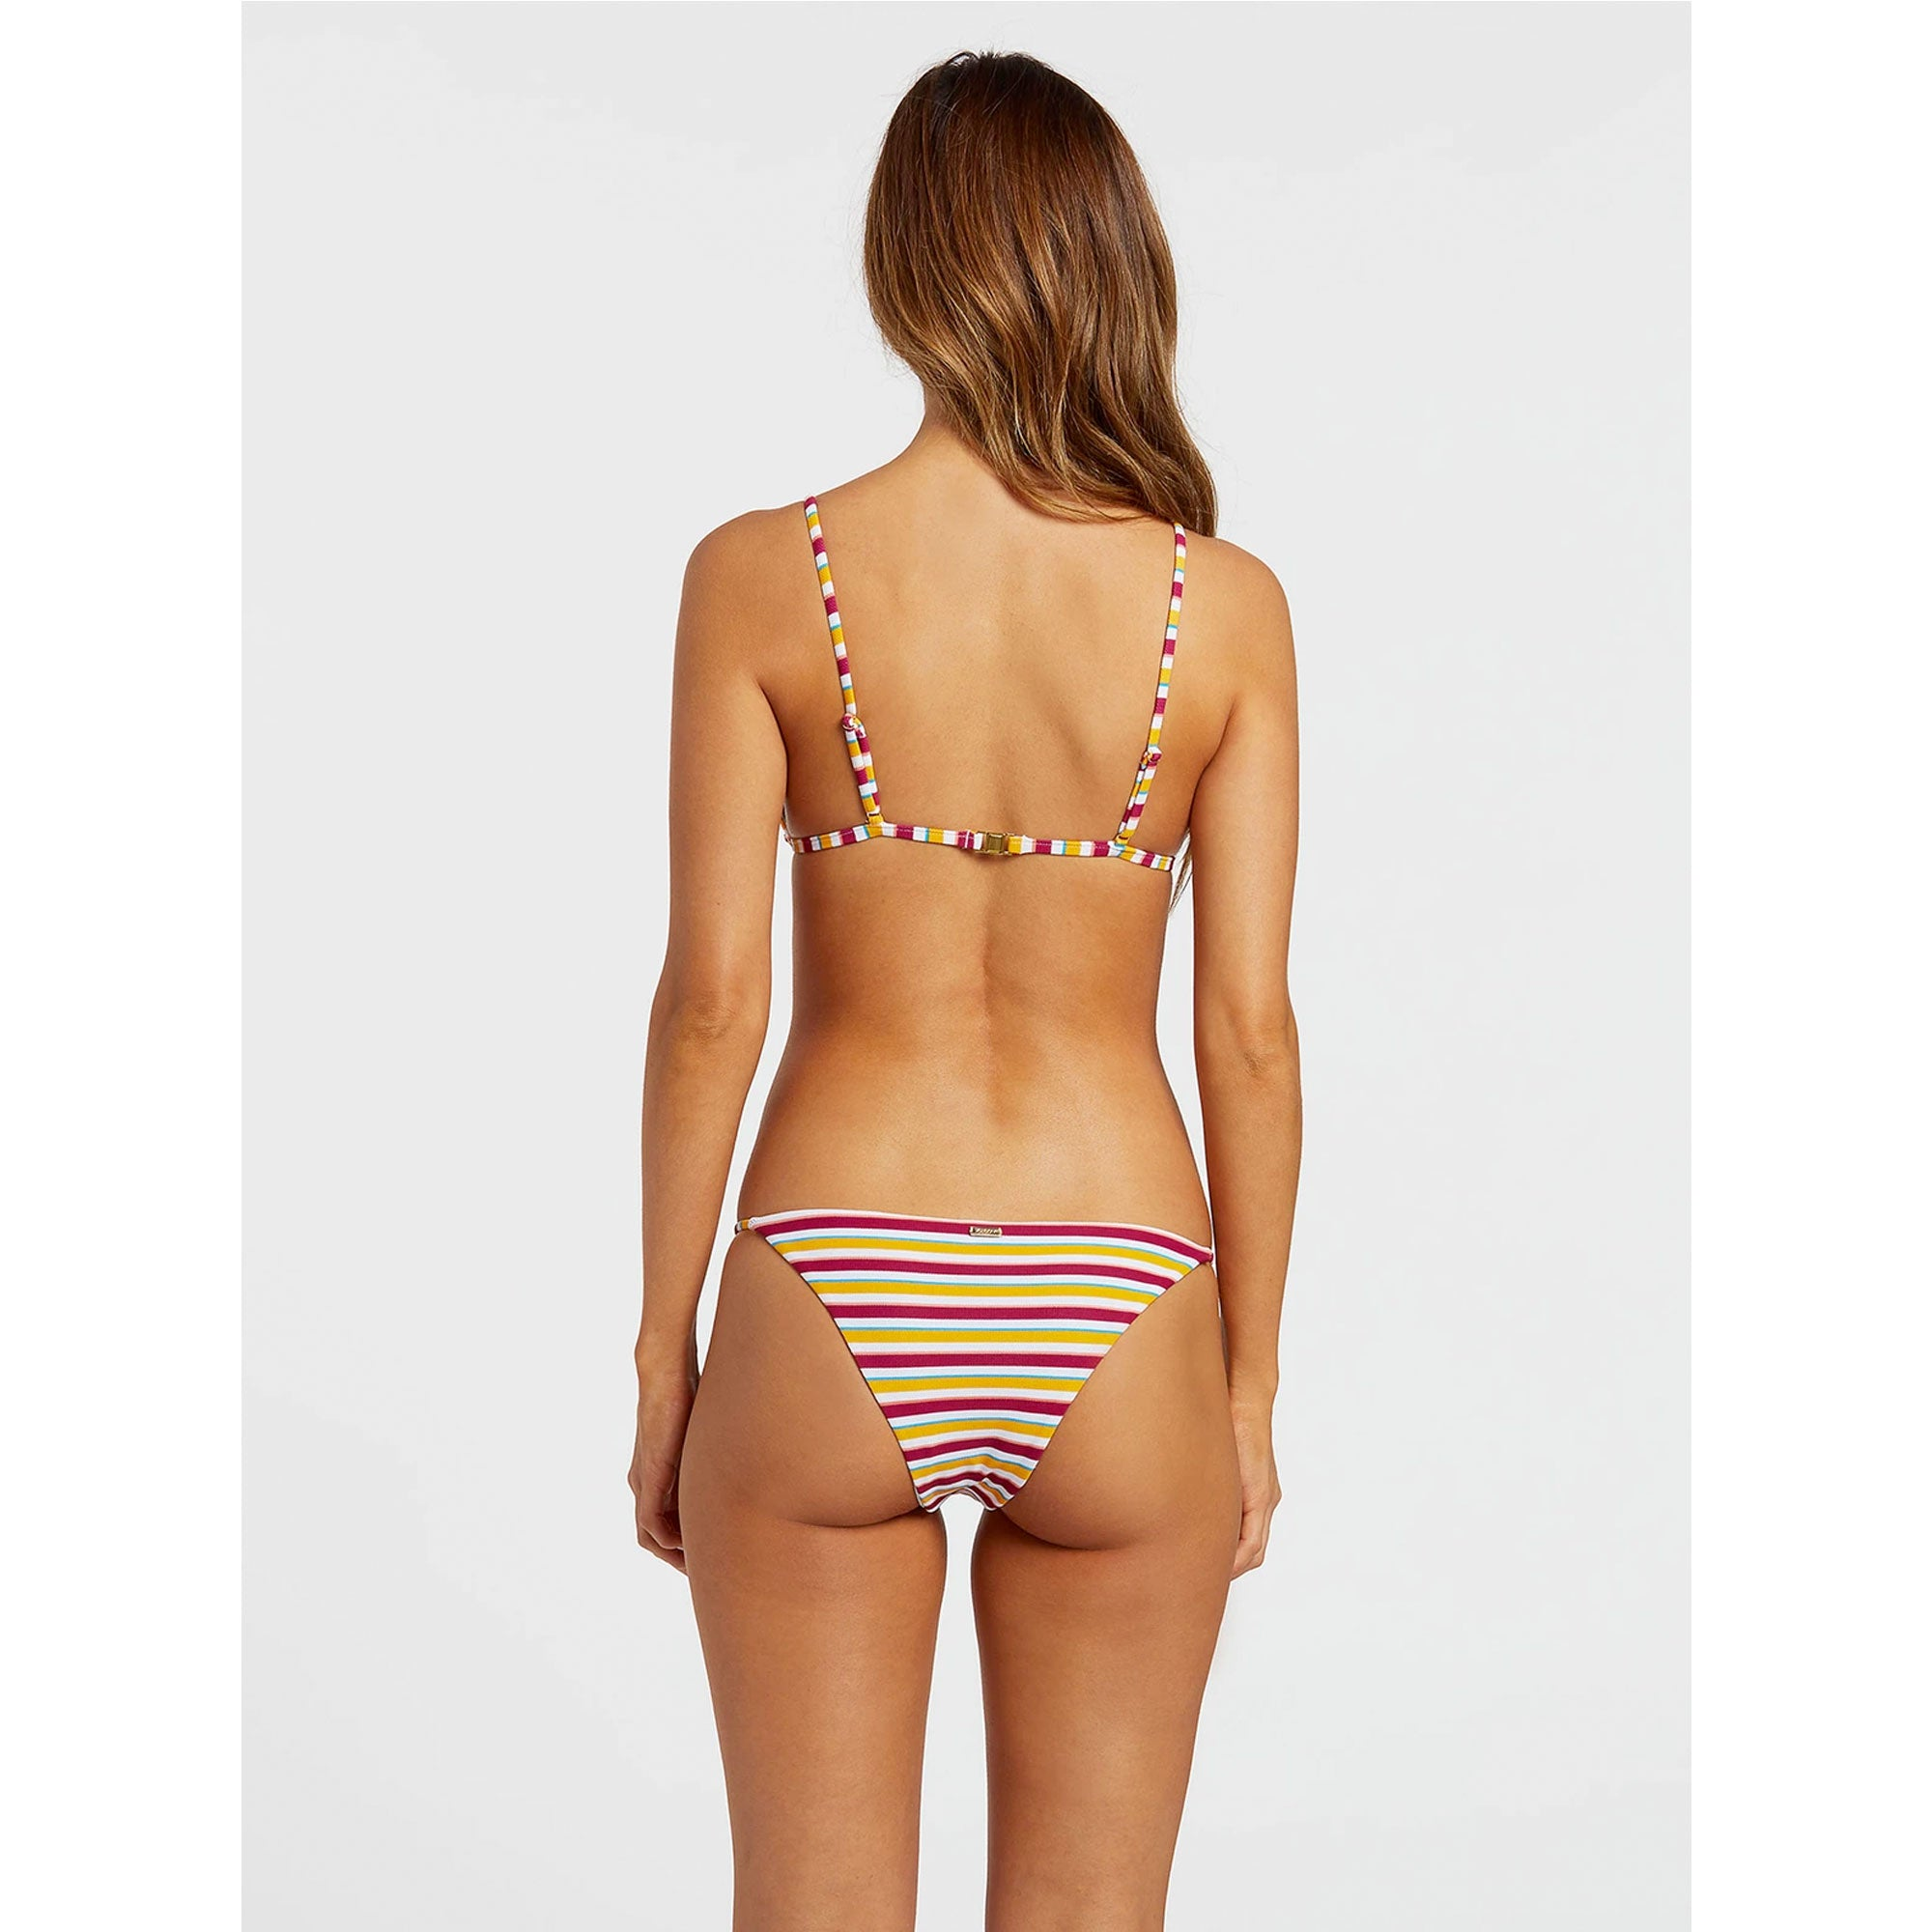 Volcom Stripe While Haute Women's Bikini Top